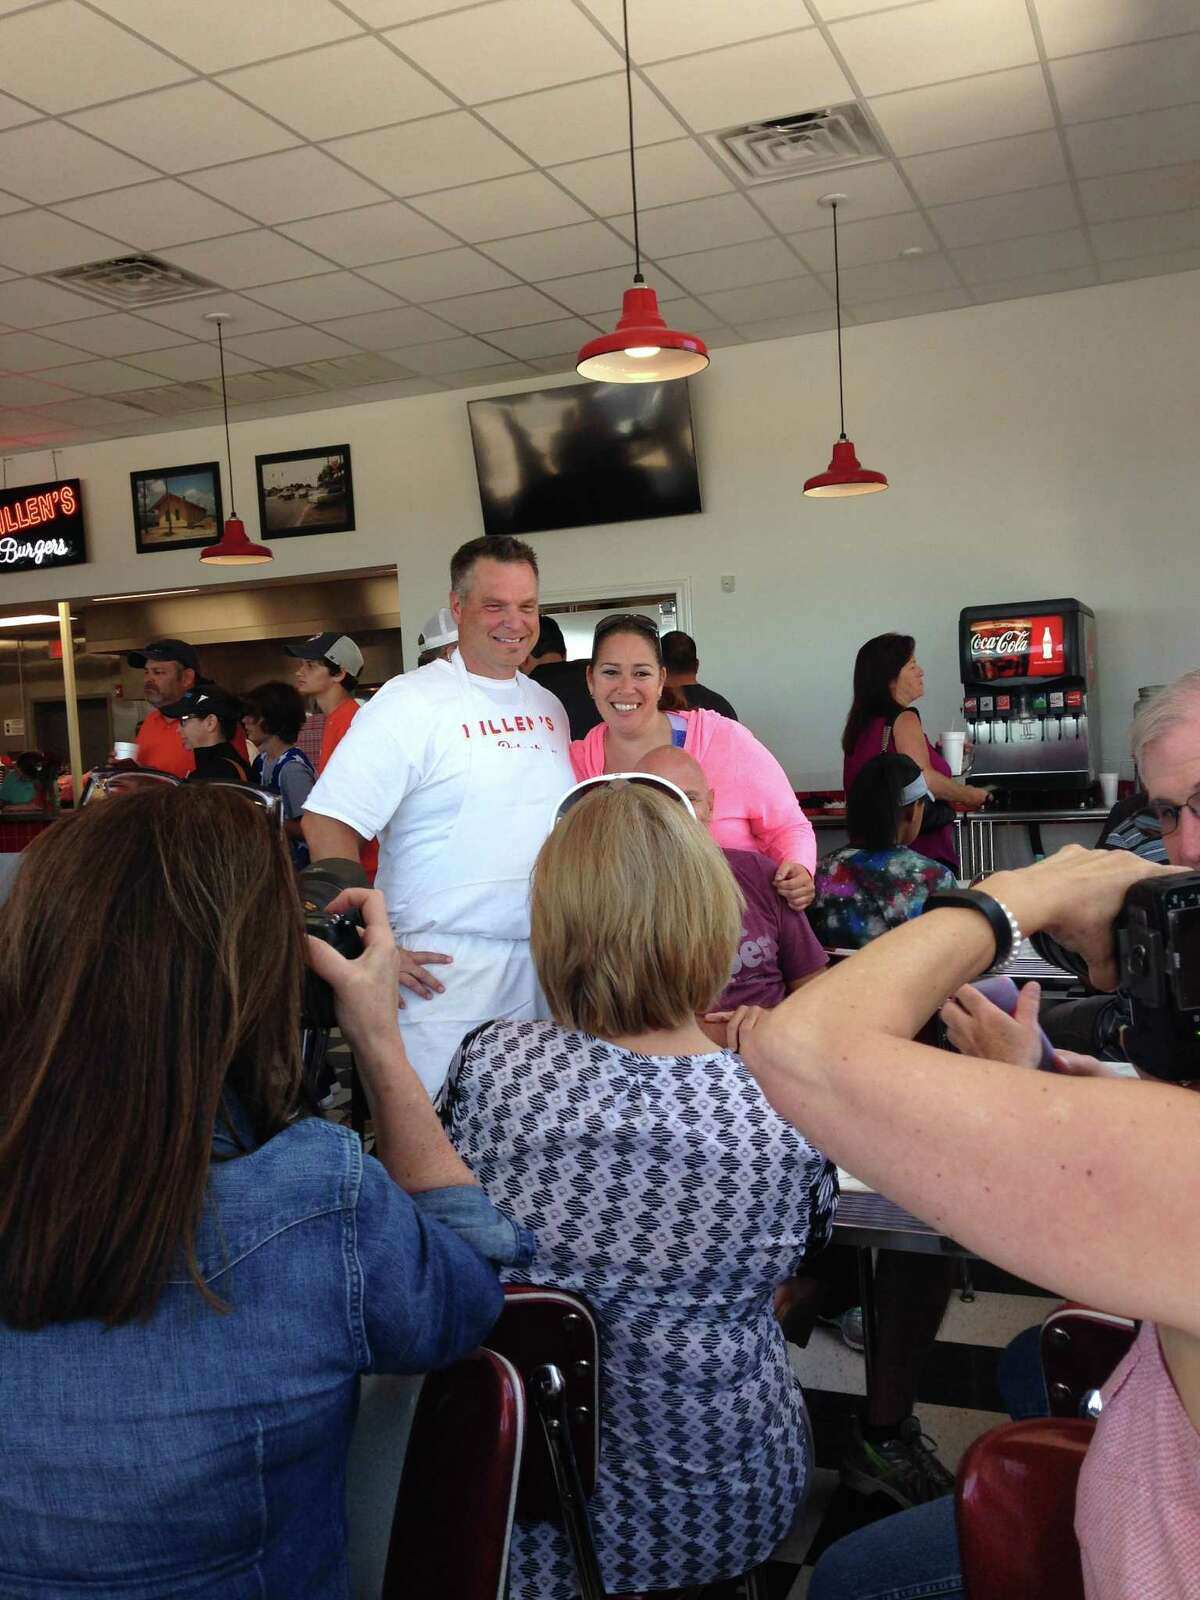 Scenes from the opening of Killen's Burgers, 2804 S. Main St., Pearland, on May 28. Shown: Ronnie Killen poses for a photo with a fan.